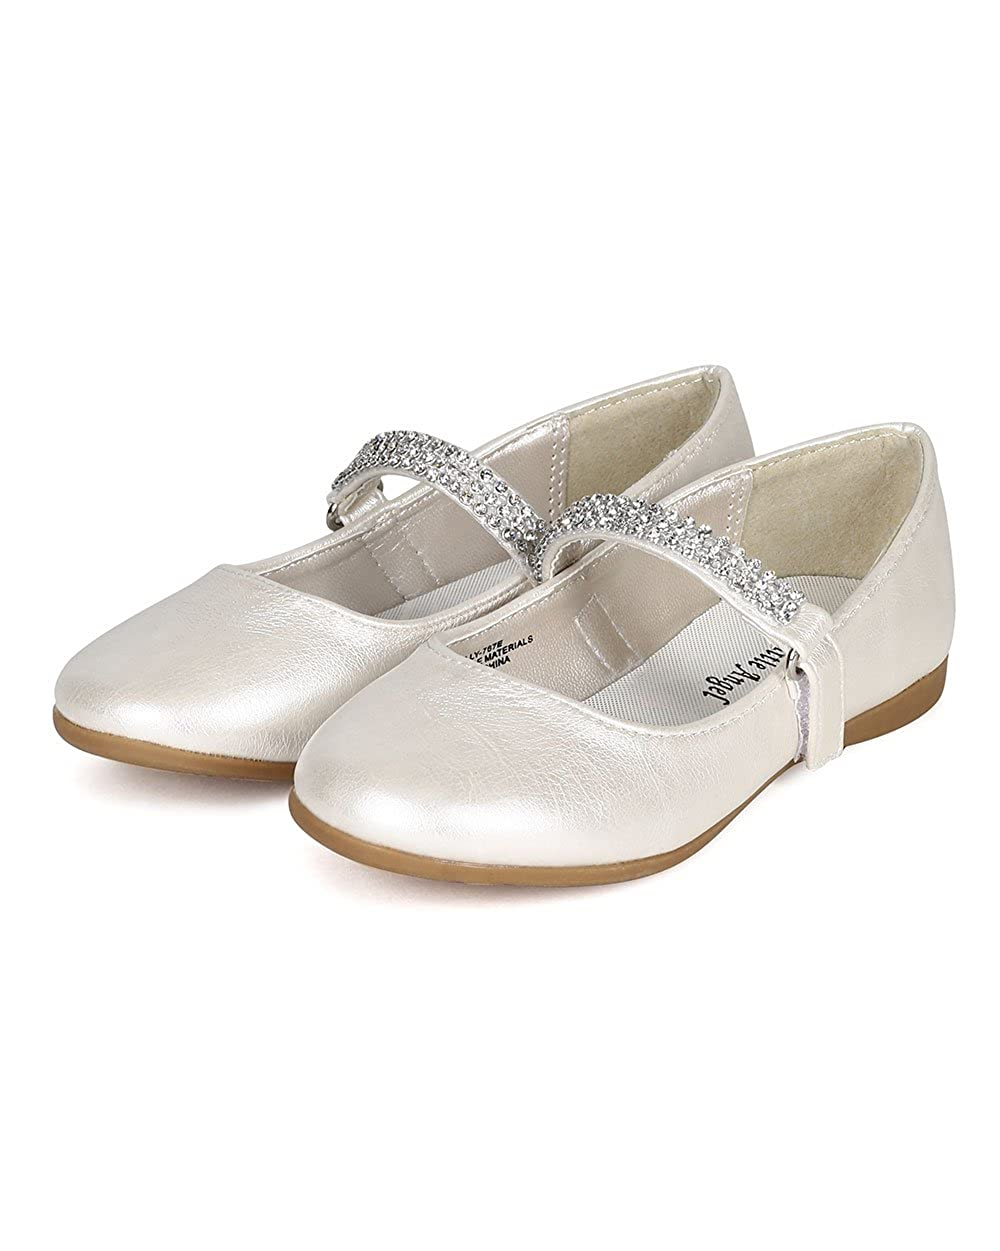 CA05 Ivory Leatherette Toddler//Little Girl Leatherette Round Toe Rhinestone Mary Jane Ballerina Flat